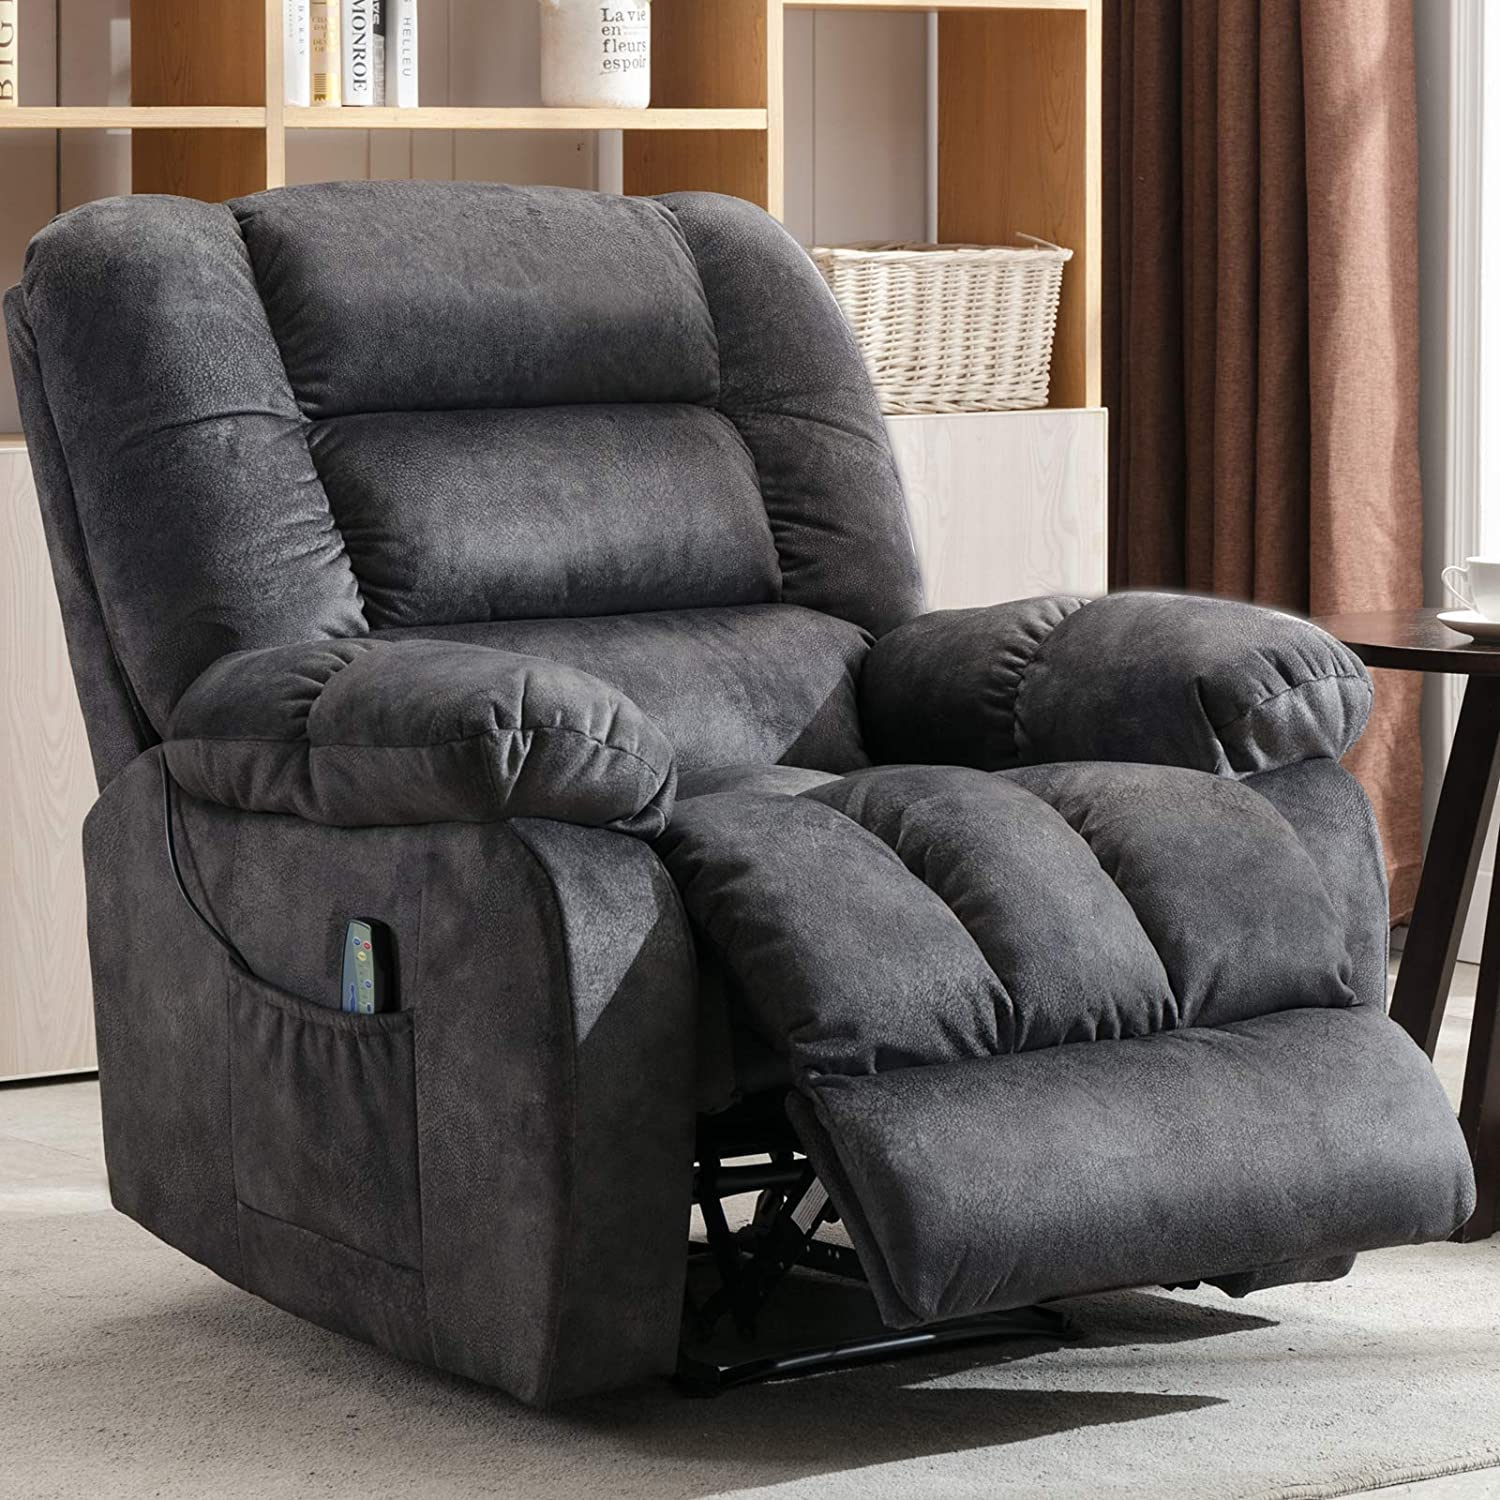 ANJ HOME Manual Massage Recliner Chair with Heat and Vibration, Lounge Chair with Thickness Armrest and Backrest R0504 (Gray)